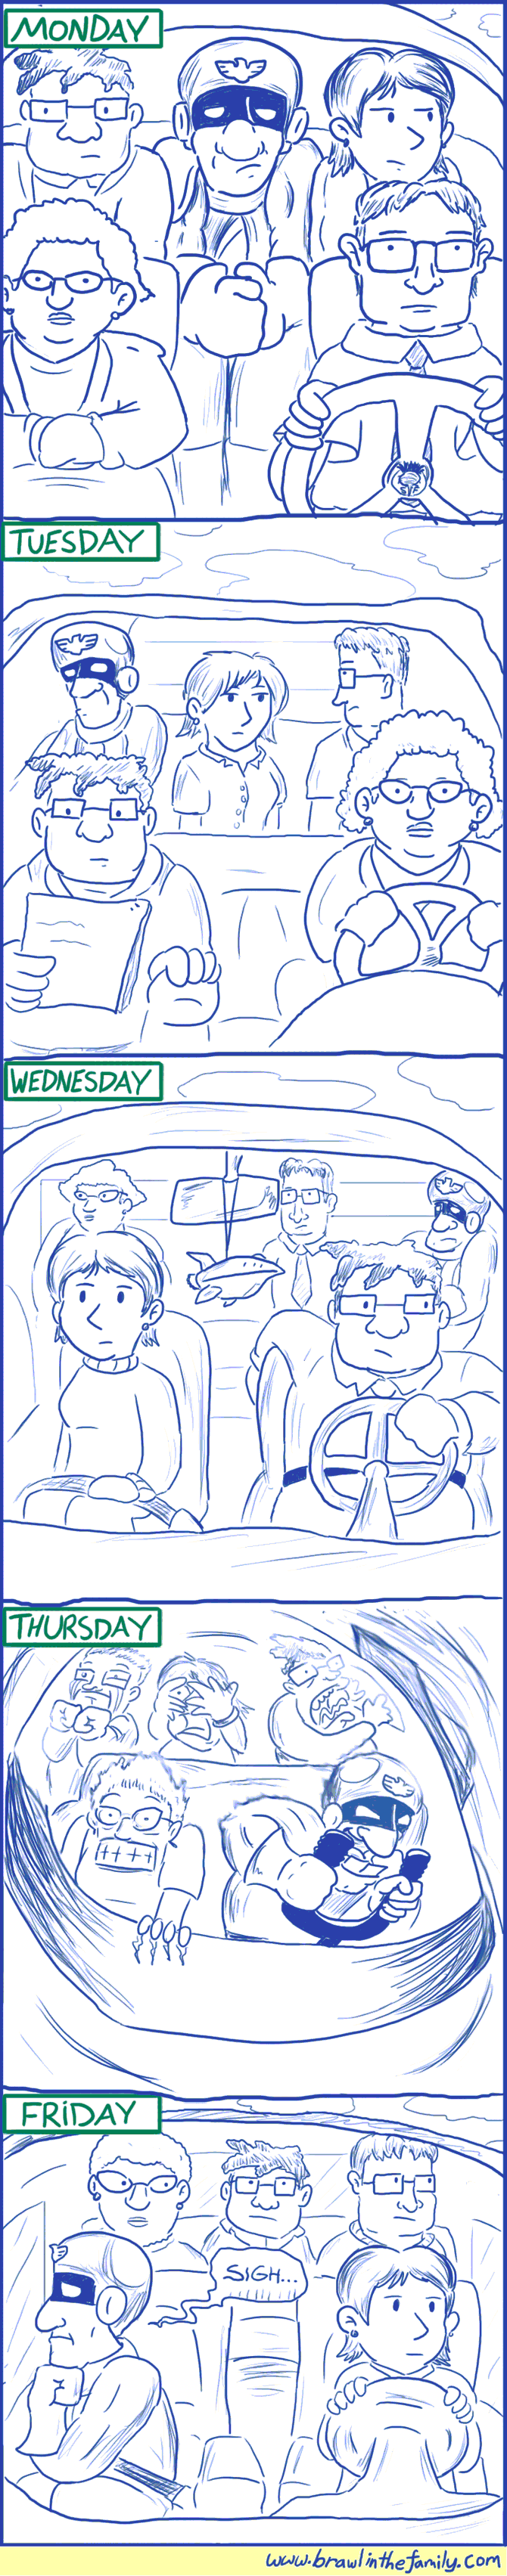 158 – Captain Falcon Carpools to Work